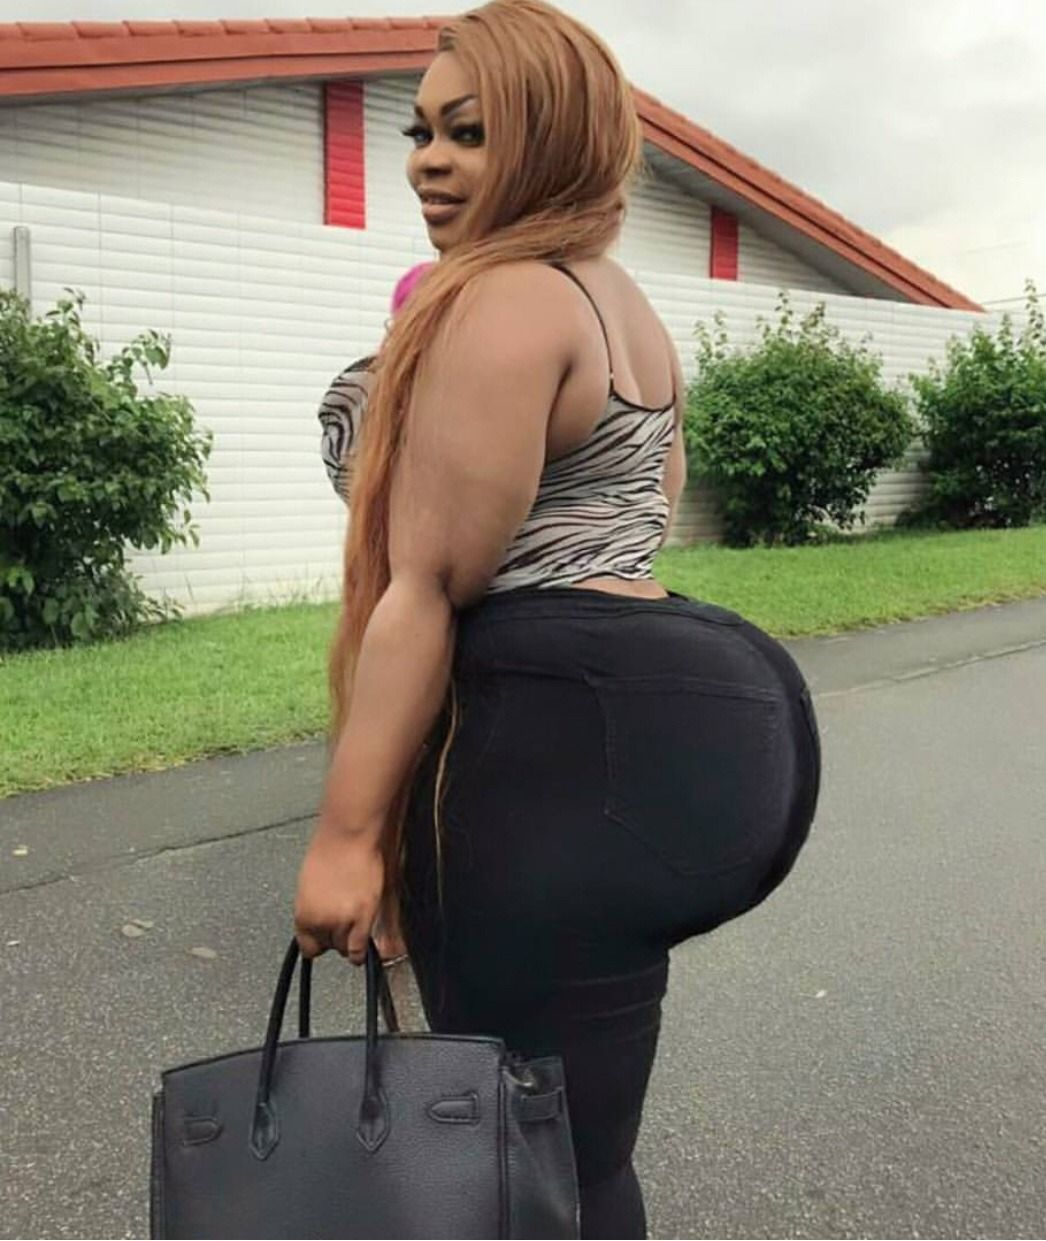 single bbw women in guymon Single bbw women - we are more than just a dating site, we will find compatible matches for you visit our site to find out more or read users reviews.